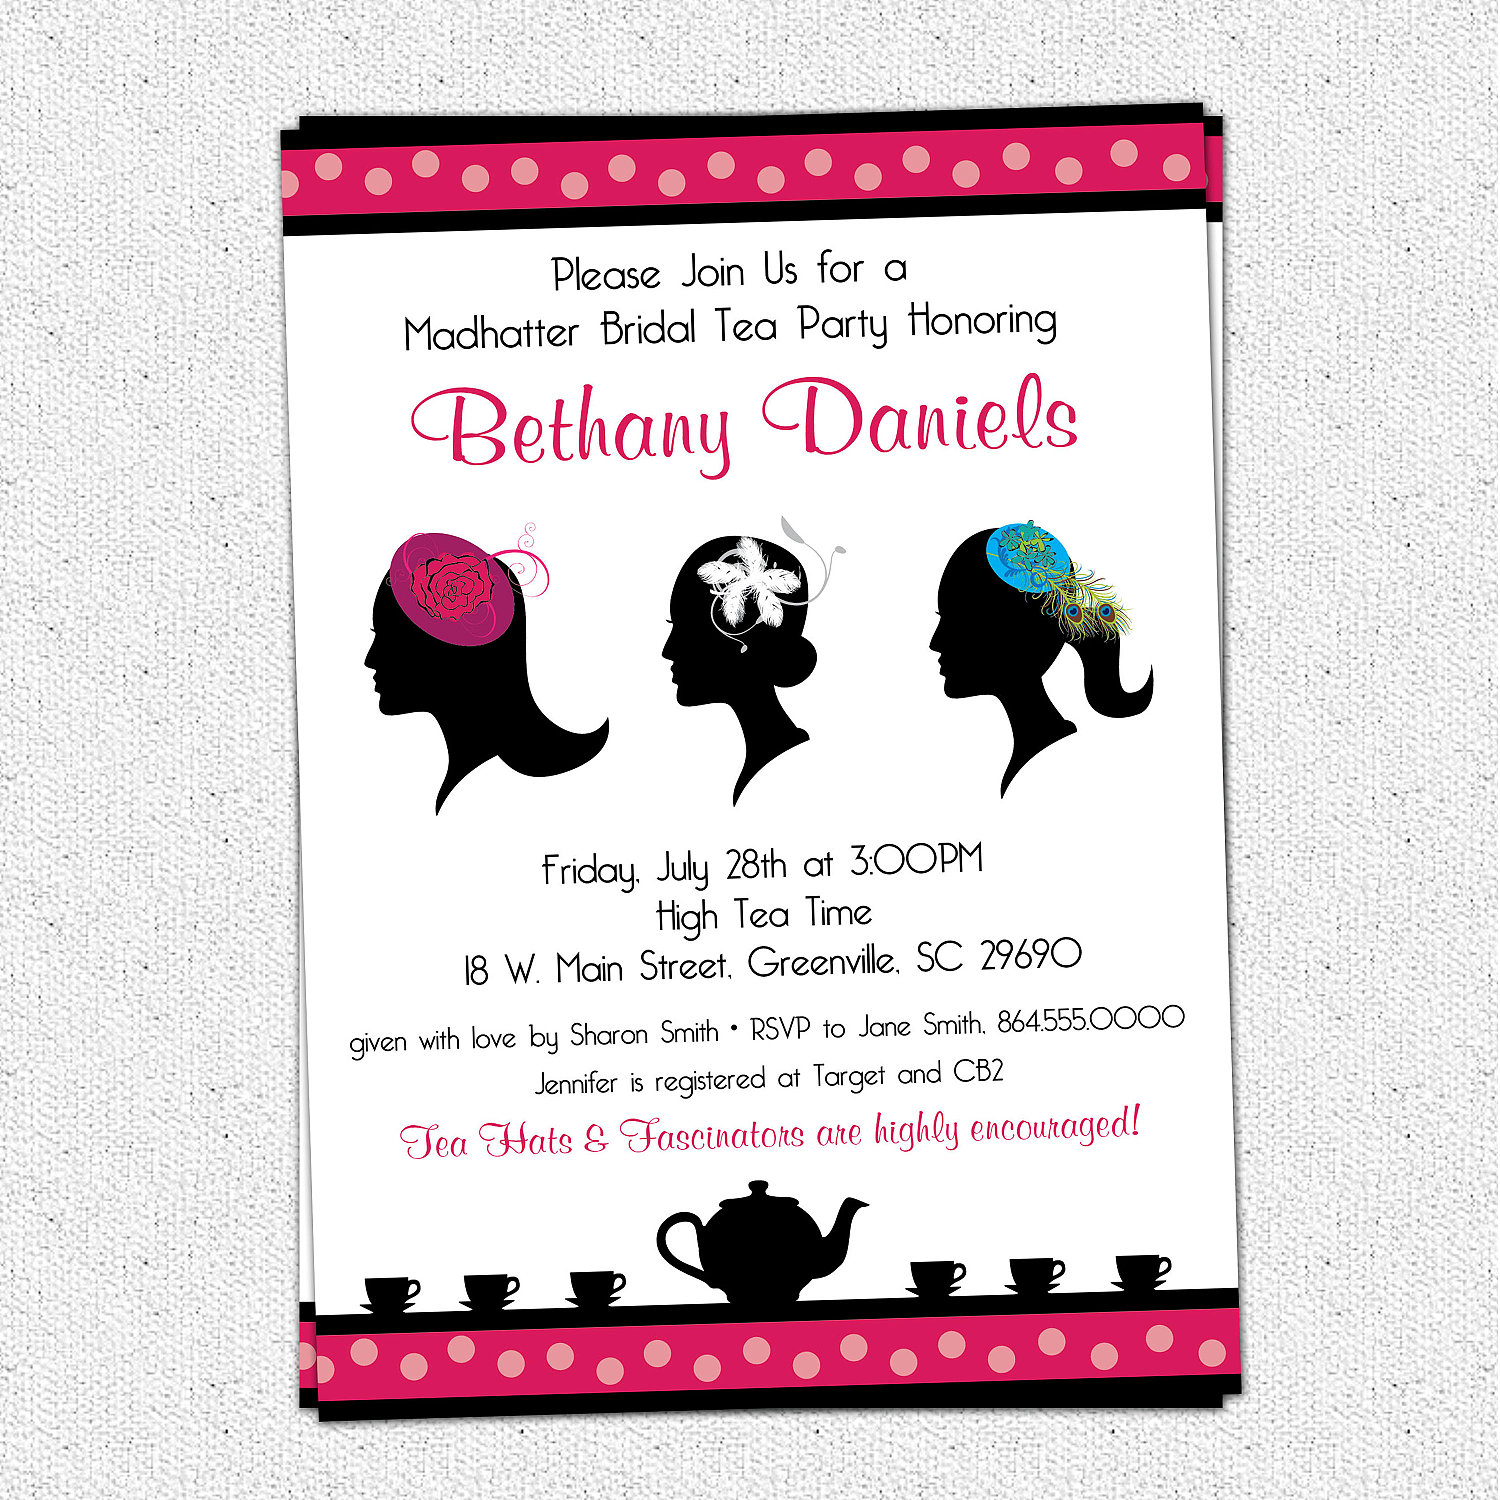 Madhatter mad hatter tea party invitations fascinator hats ilfullxfull344706832original monicamarmolfo Images